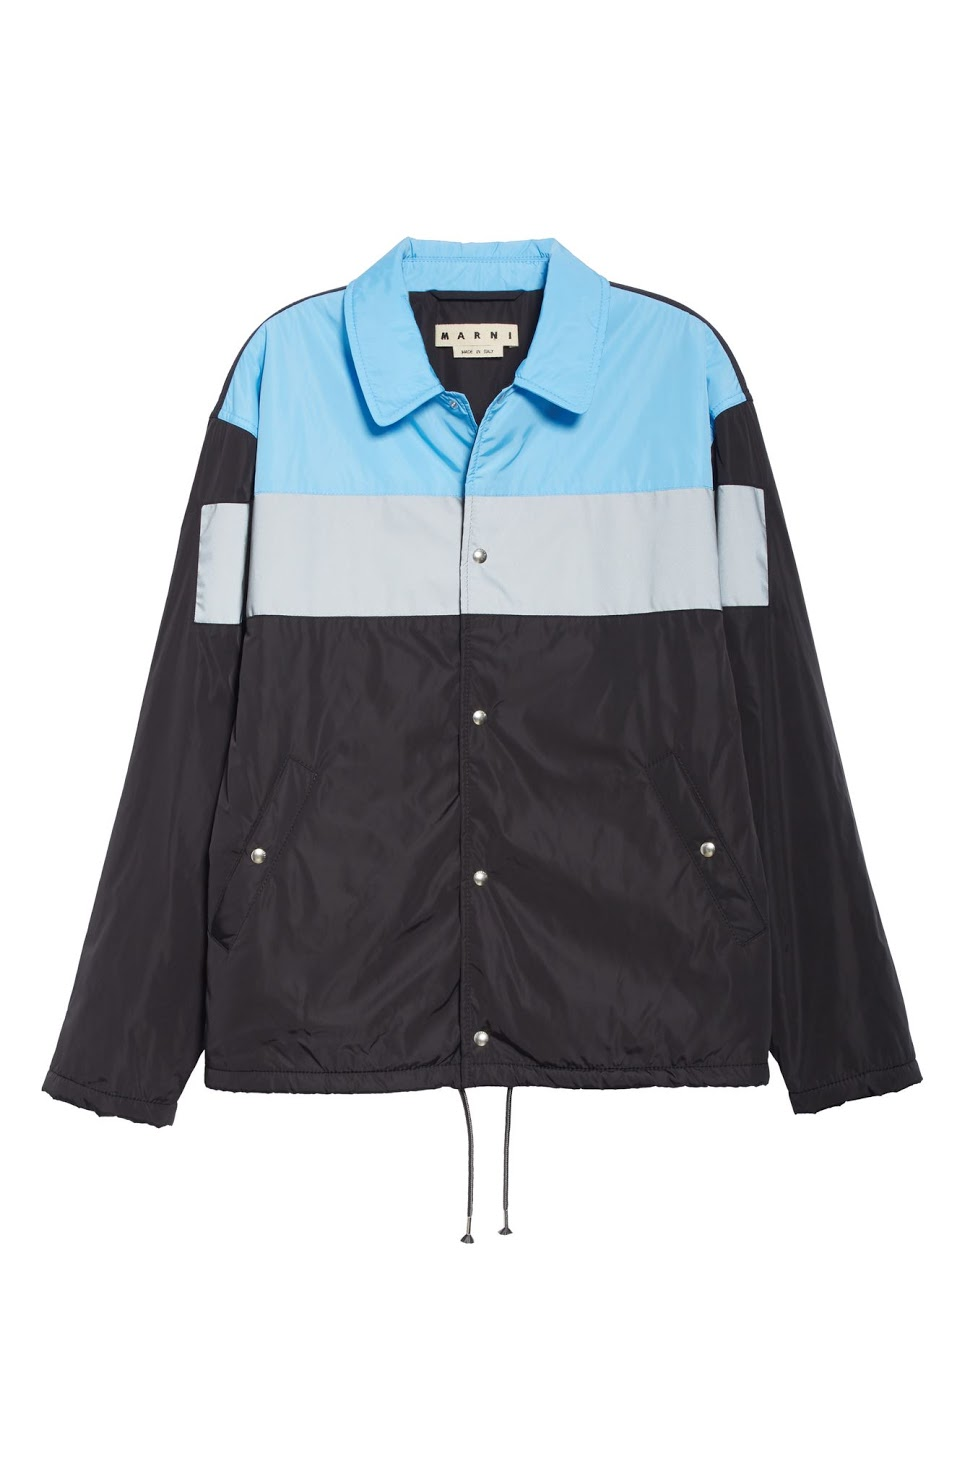 Marni_Nylon Jacket_Black_$990.jpeg